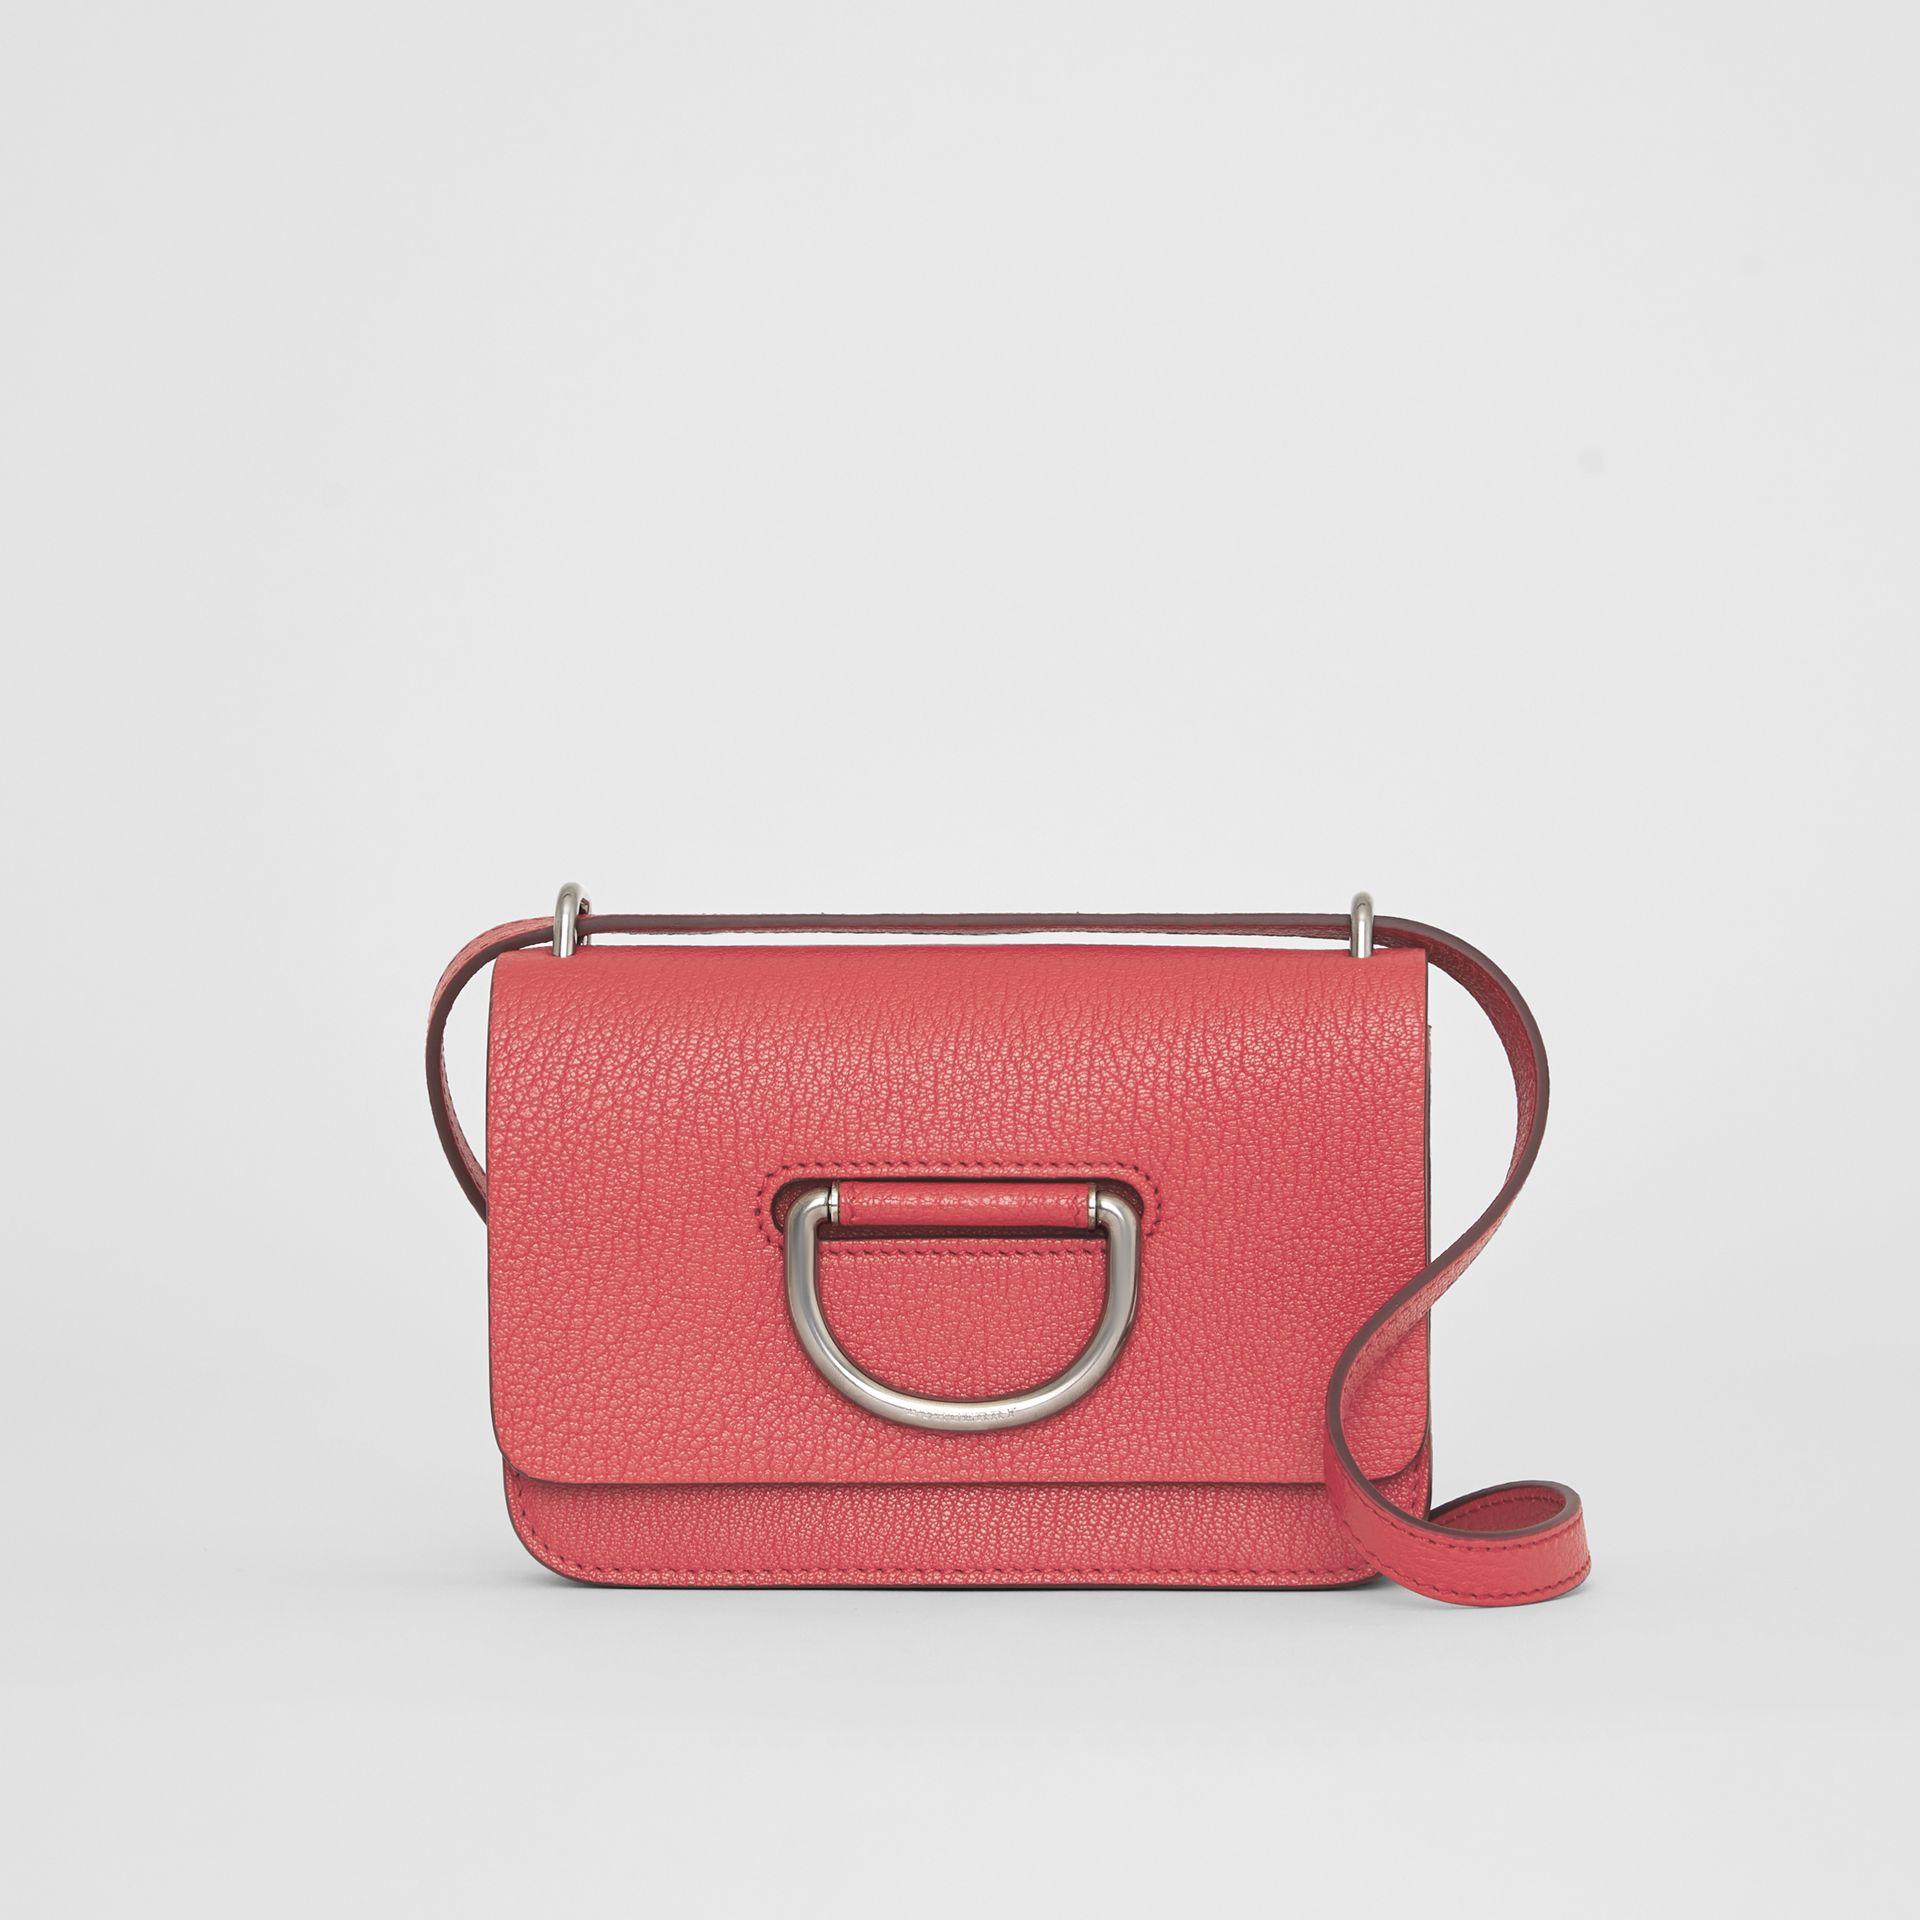 Borsa The D-ring mini in pelle (Rosa Corallo Brillante) - Donna | Burberry - immagine della galleria 0